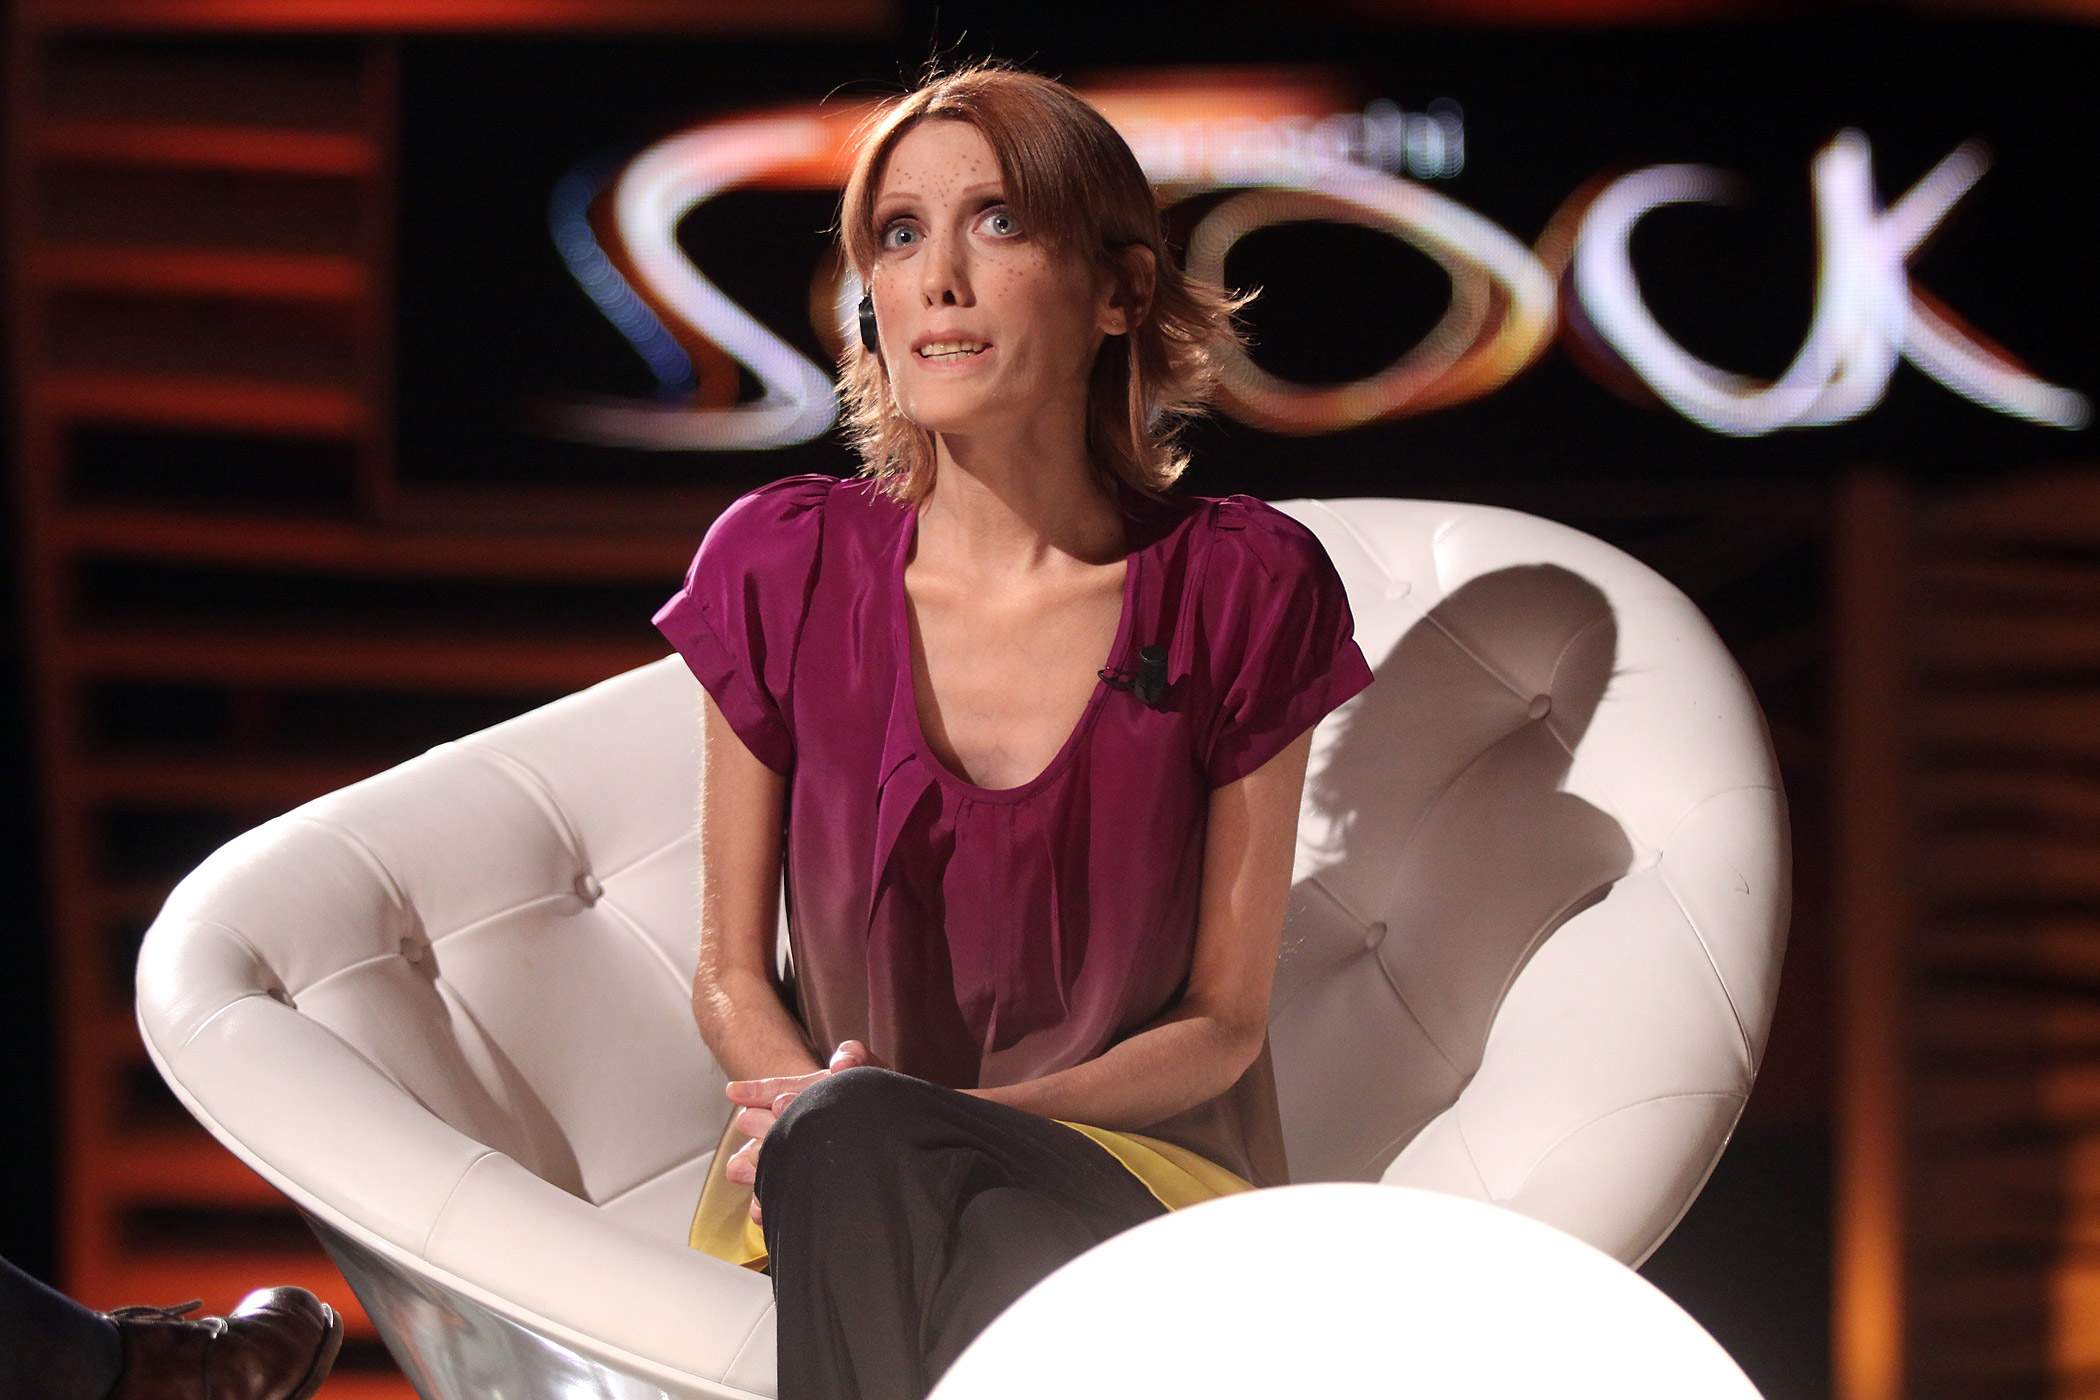 Isabelle Caro attends the Barbareschi Sciok Italian TV Show at La7 Studios on March 5, 2010 in Rome, Italy.